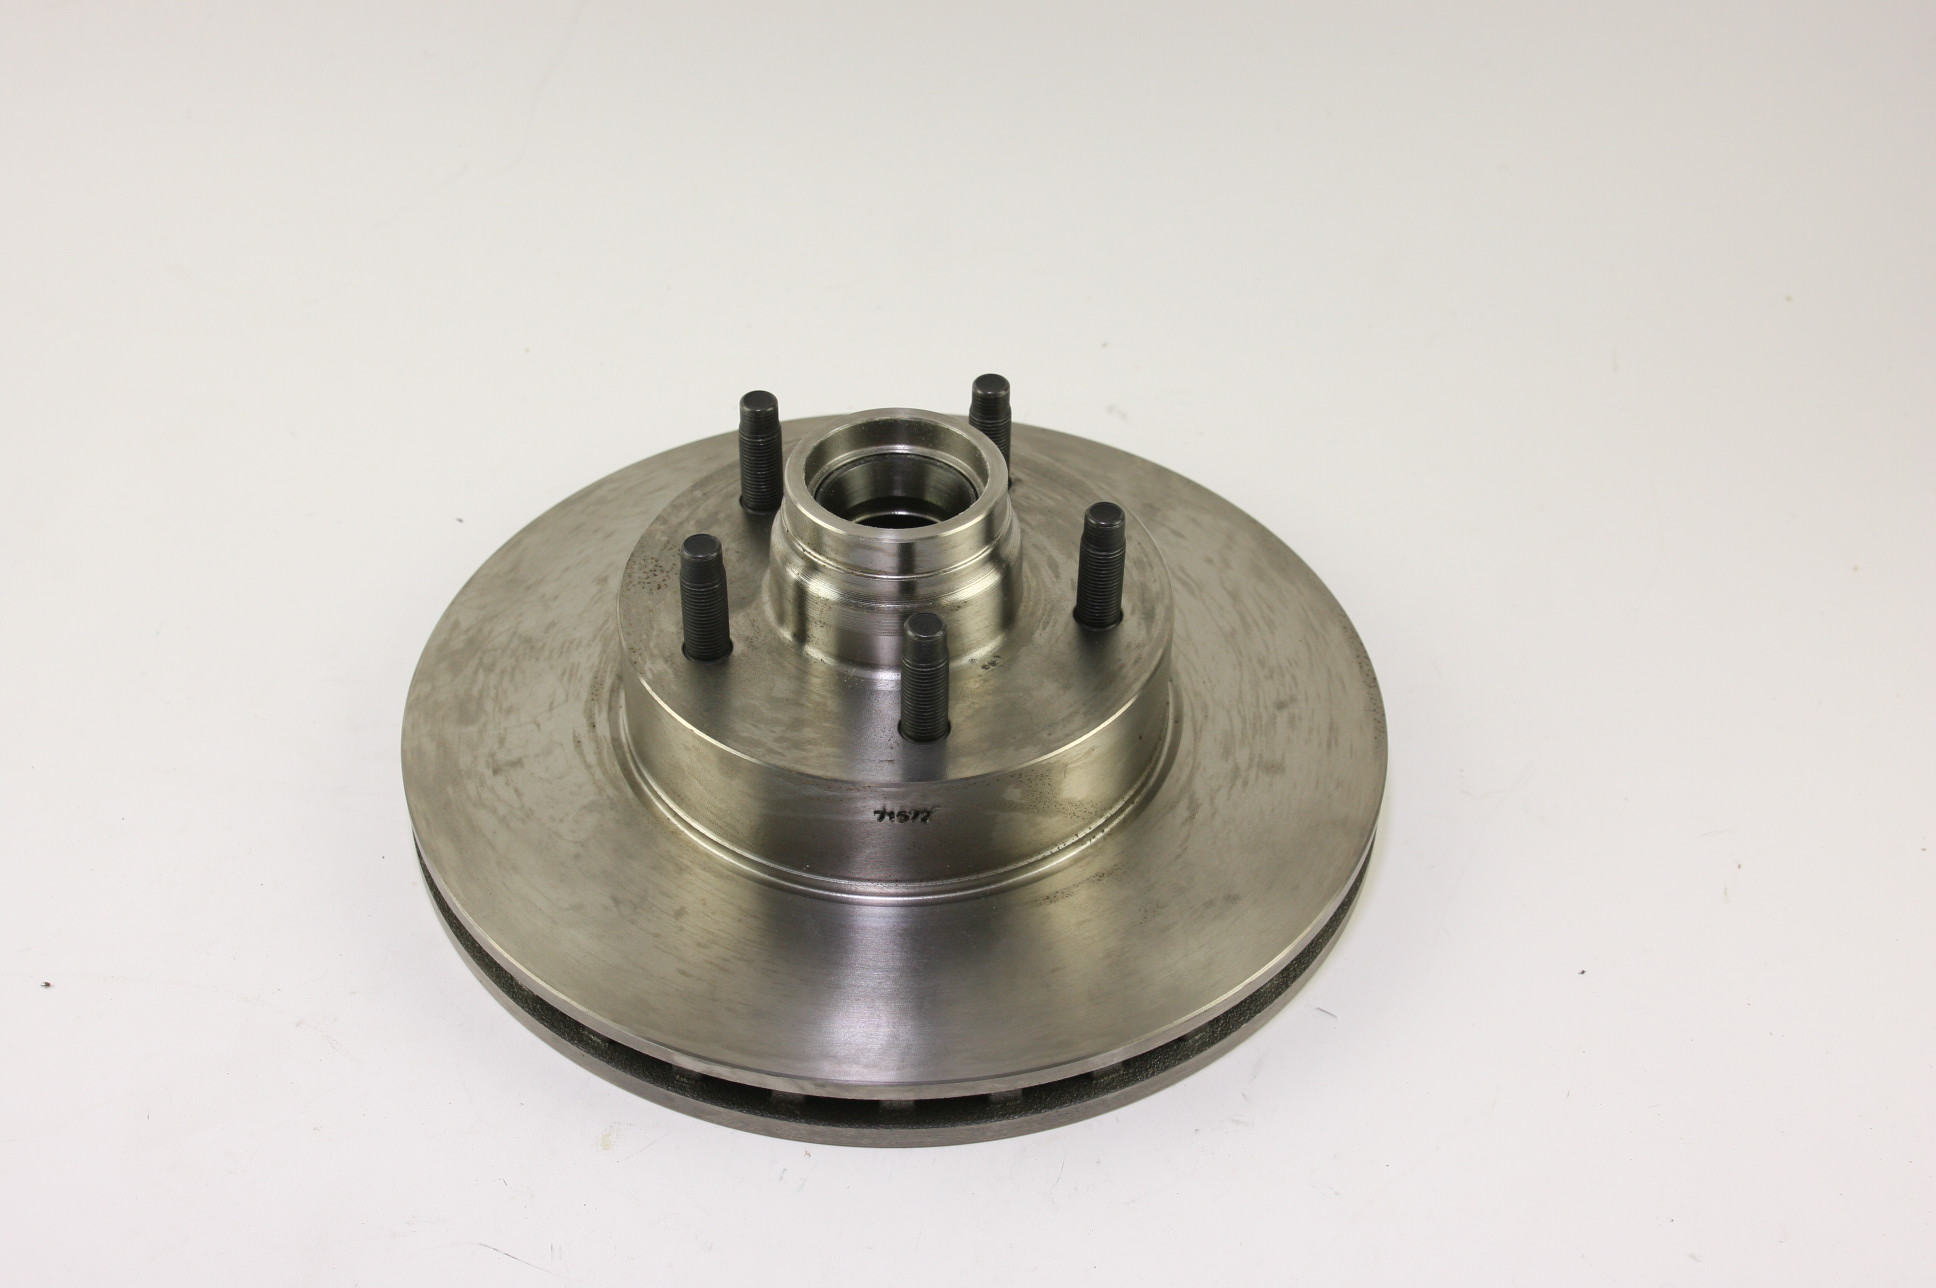 *** New OEM Motorcraft BRRF62 Ford AL5Z1102A Front Disc Brake Rotor Hub Assembly - image 1